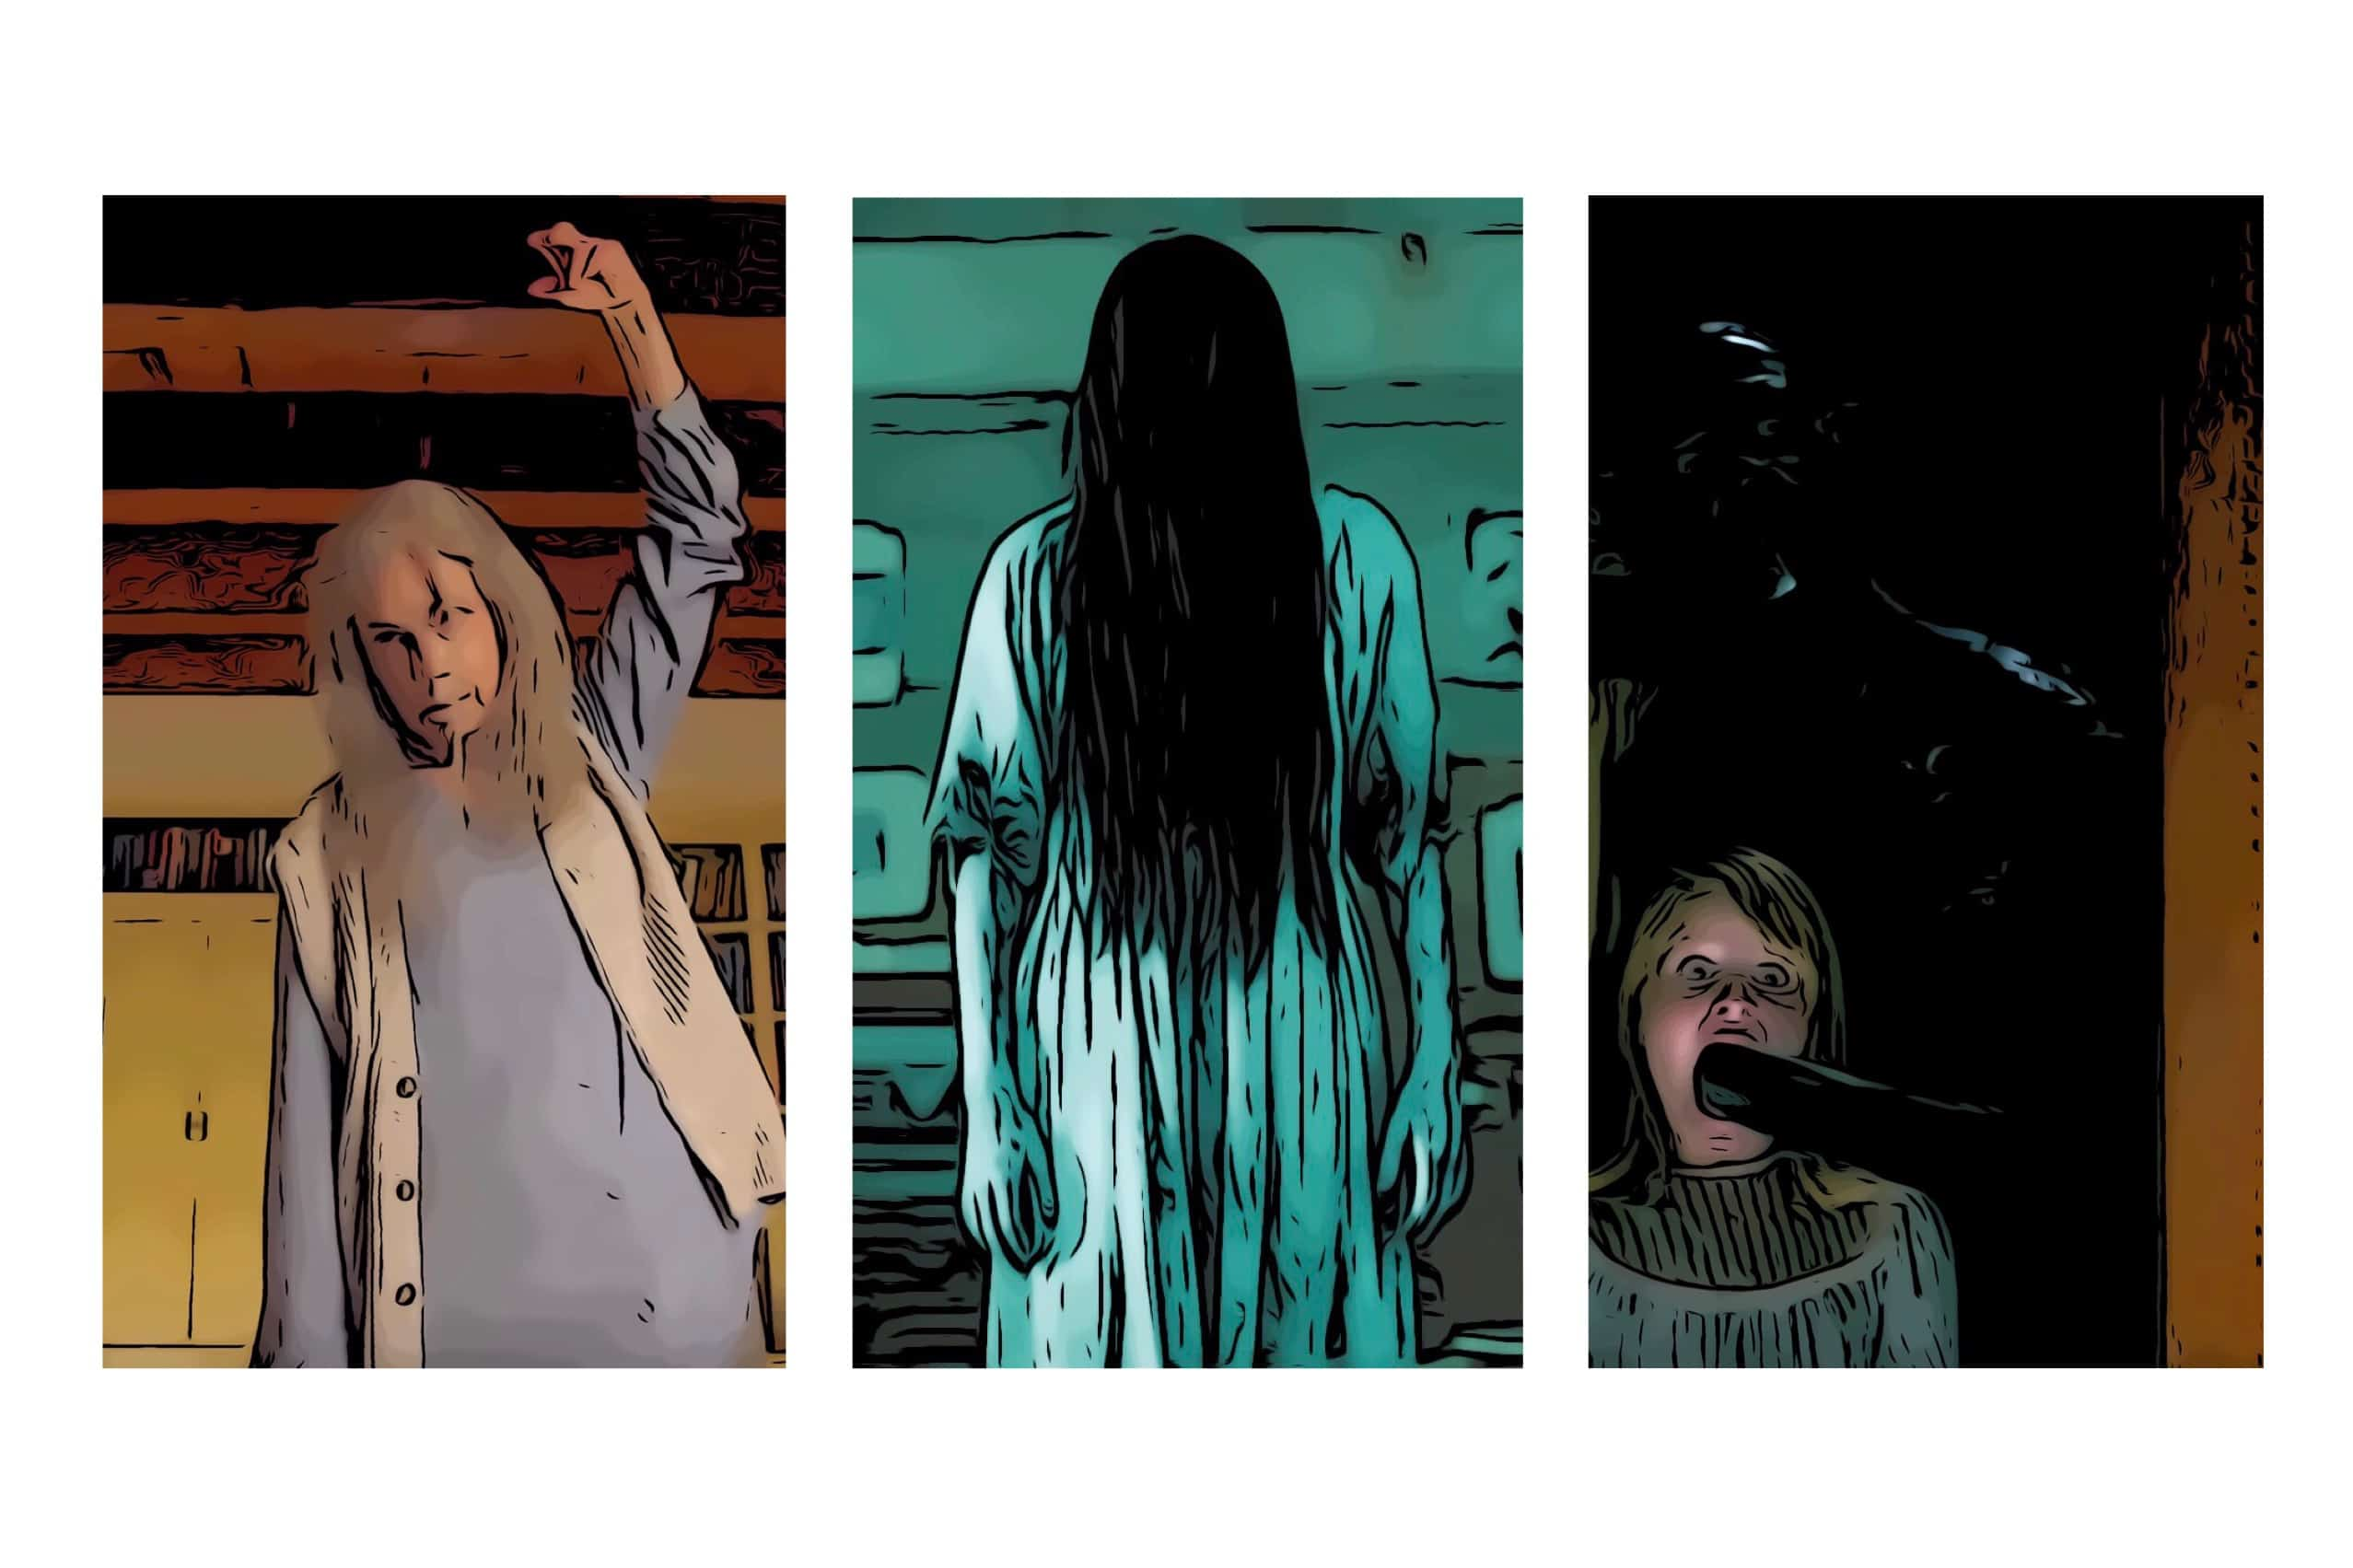 3 of the pg 13 scary movies in the post.